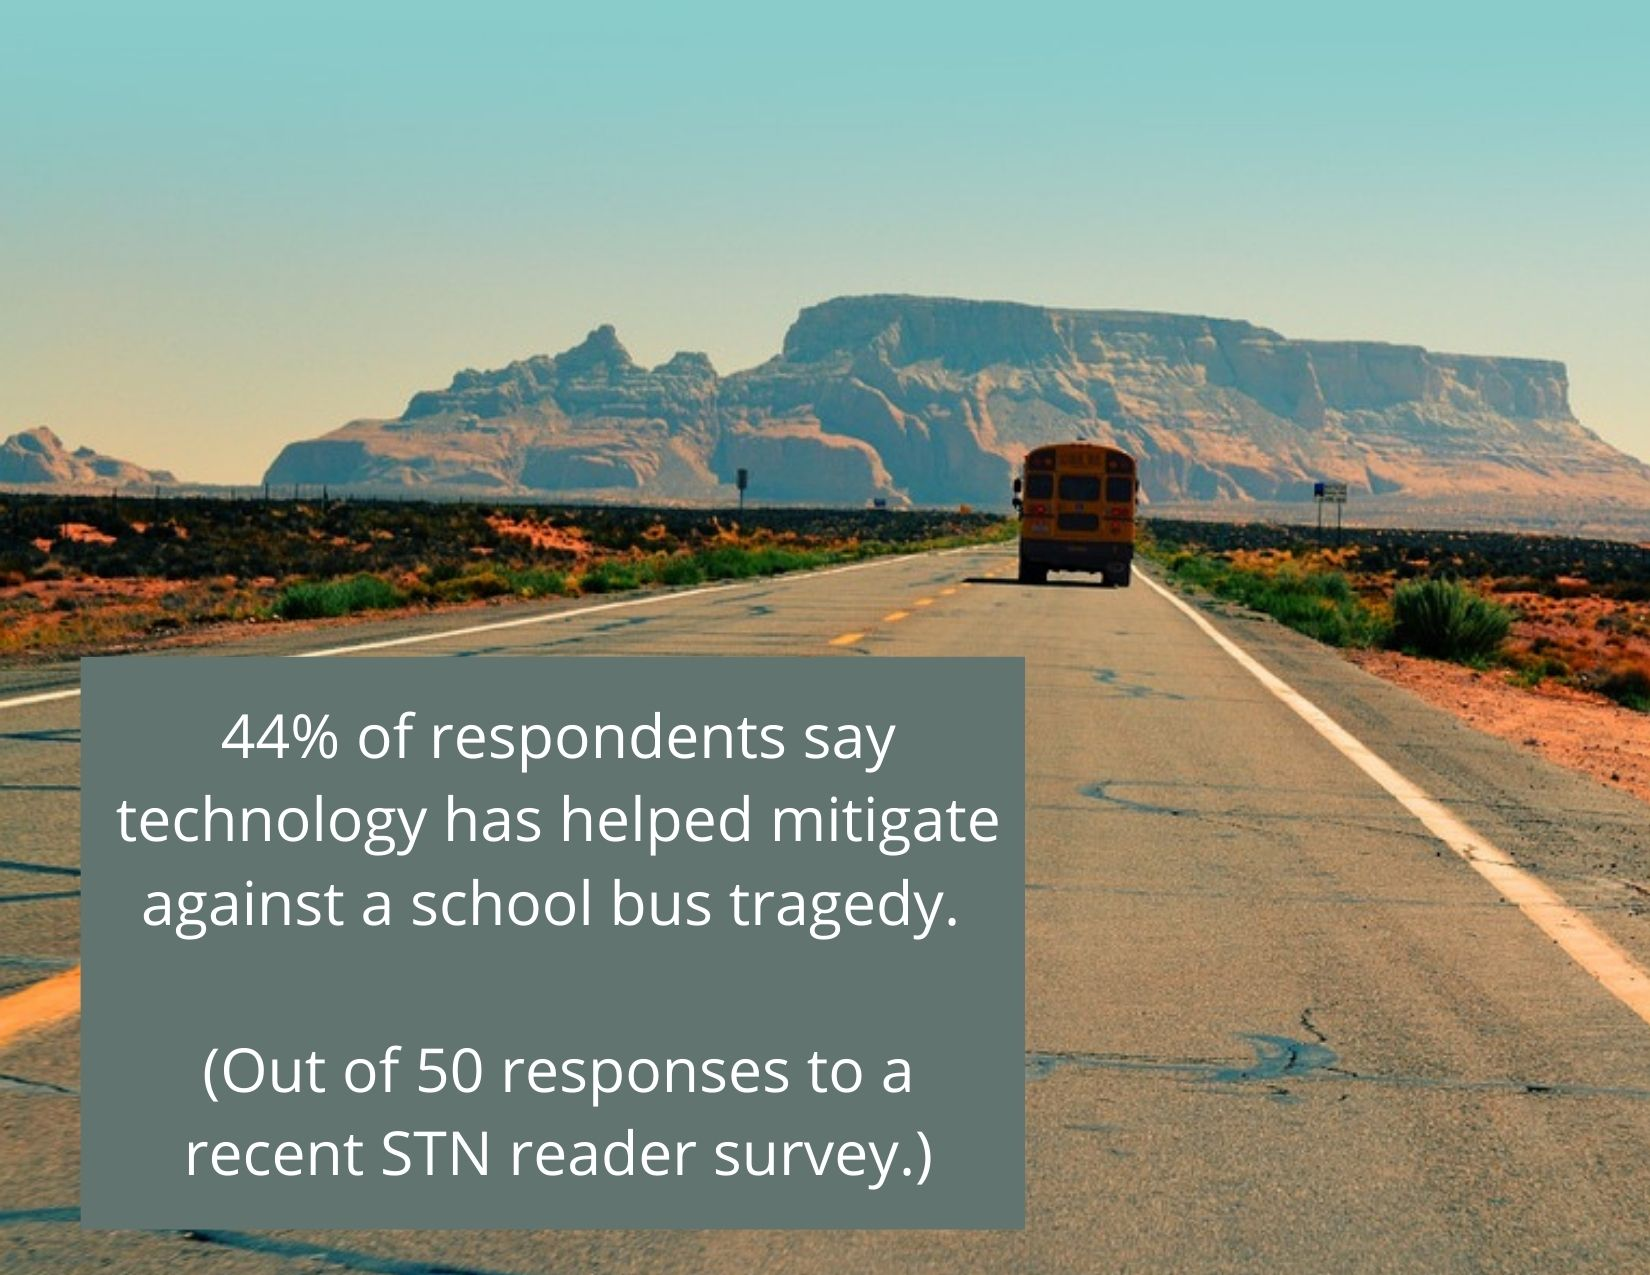 44% of respondents say technology has helped mitigate against a school bus tragedy. (Out of 50 responses to a recent STN reader survey.)